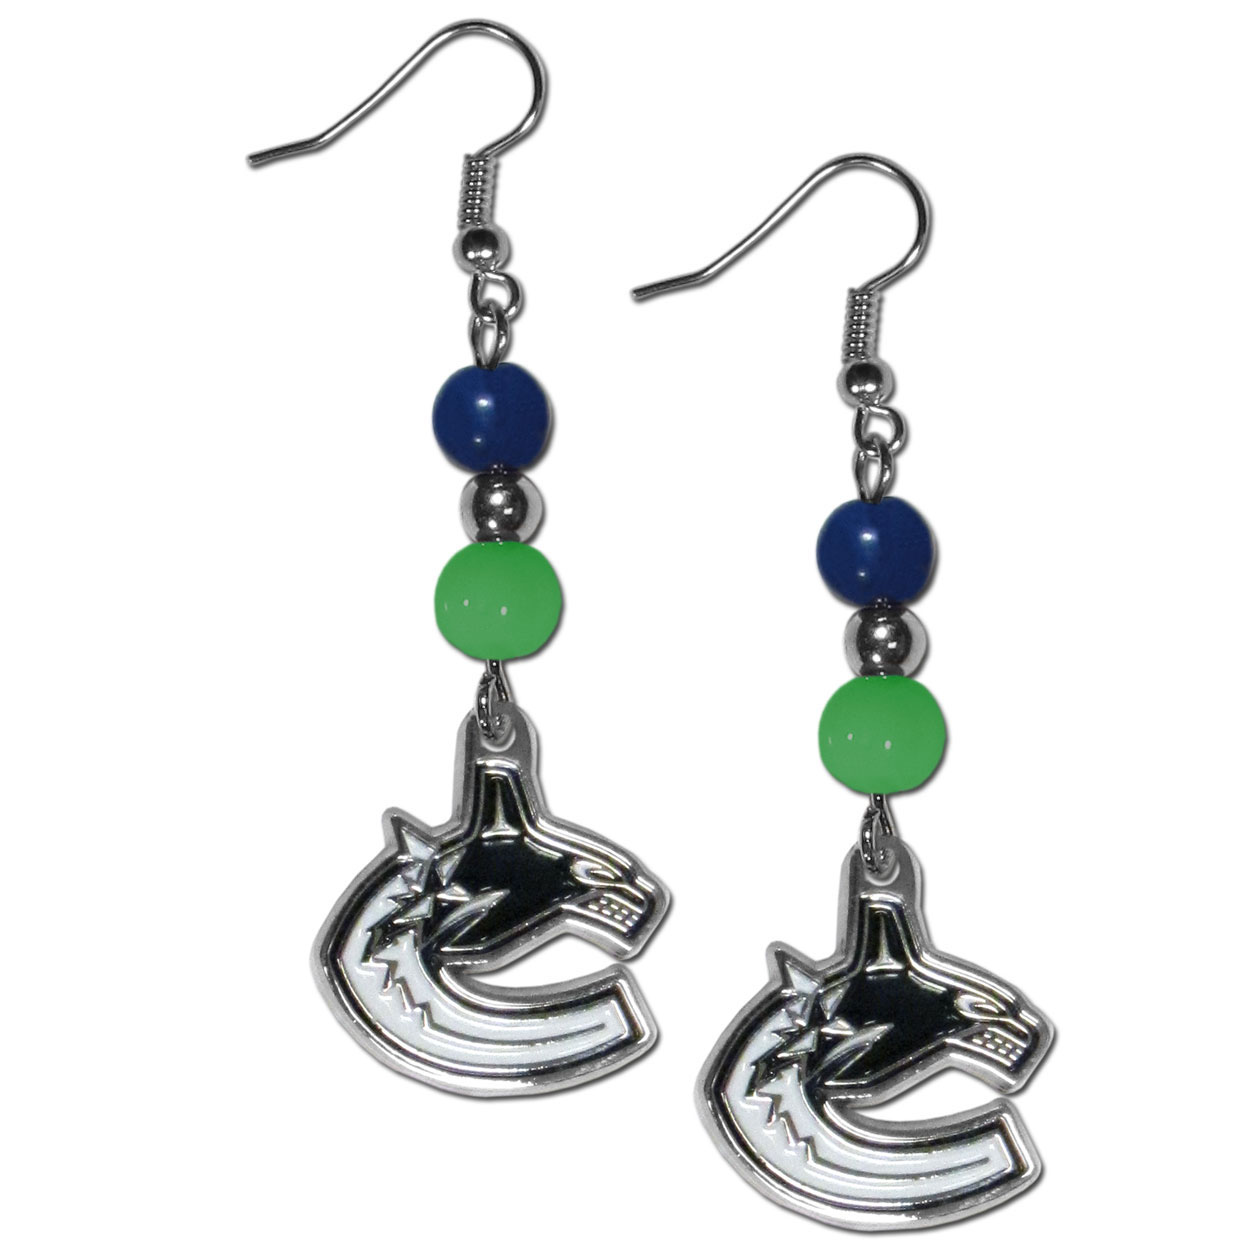 Vancouver Canucks® Fan Bead Dangle Earrings - Love your team, show it off with our Vancouver Canucks® bead dangle earrings! These super cute earrings hang approximately 2 inches and features 2 team colored beads and a high polish team charm. A must have for game day!